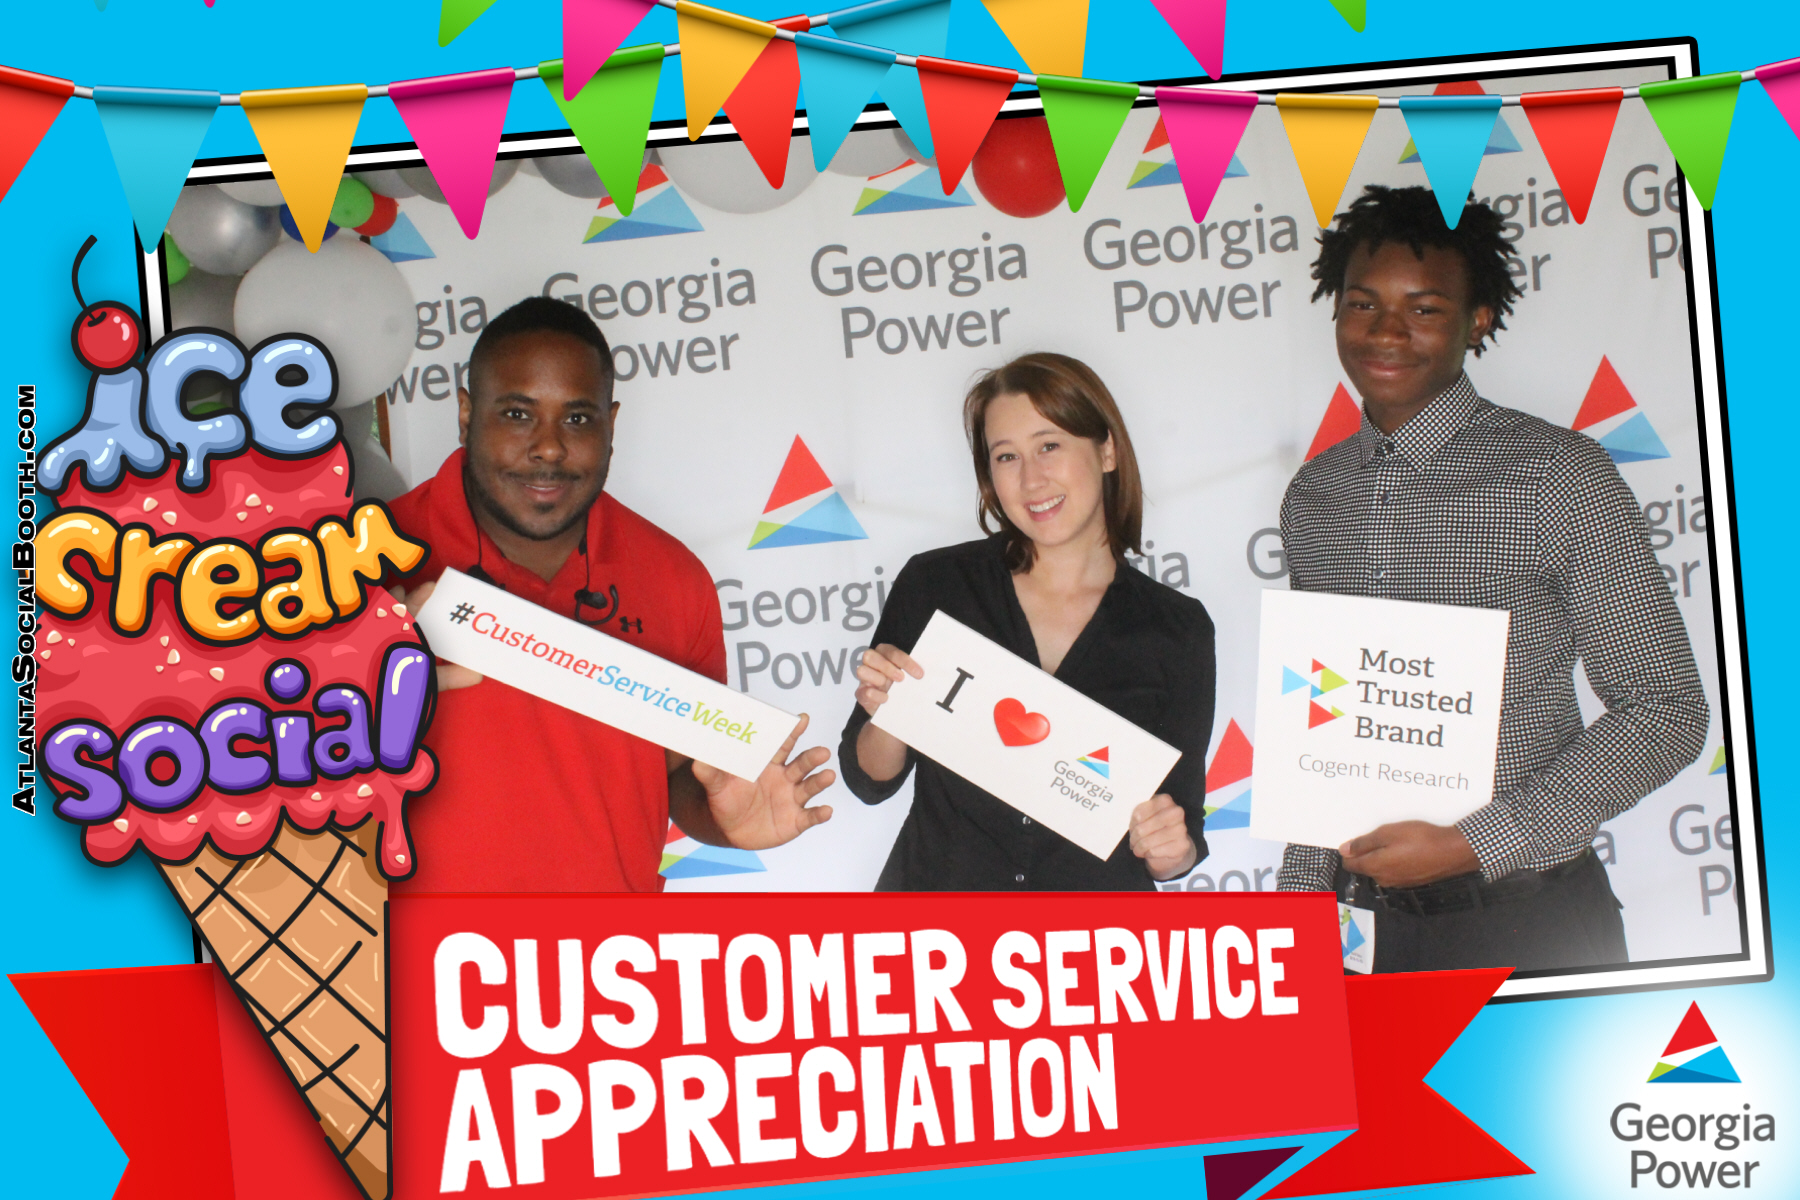 GA Power #CustomerServiceAppreciatio